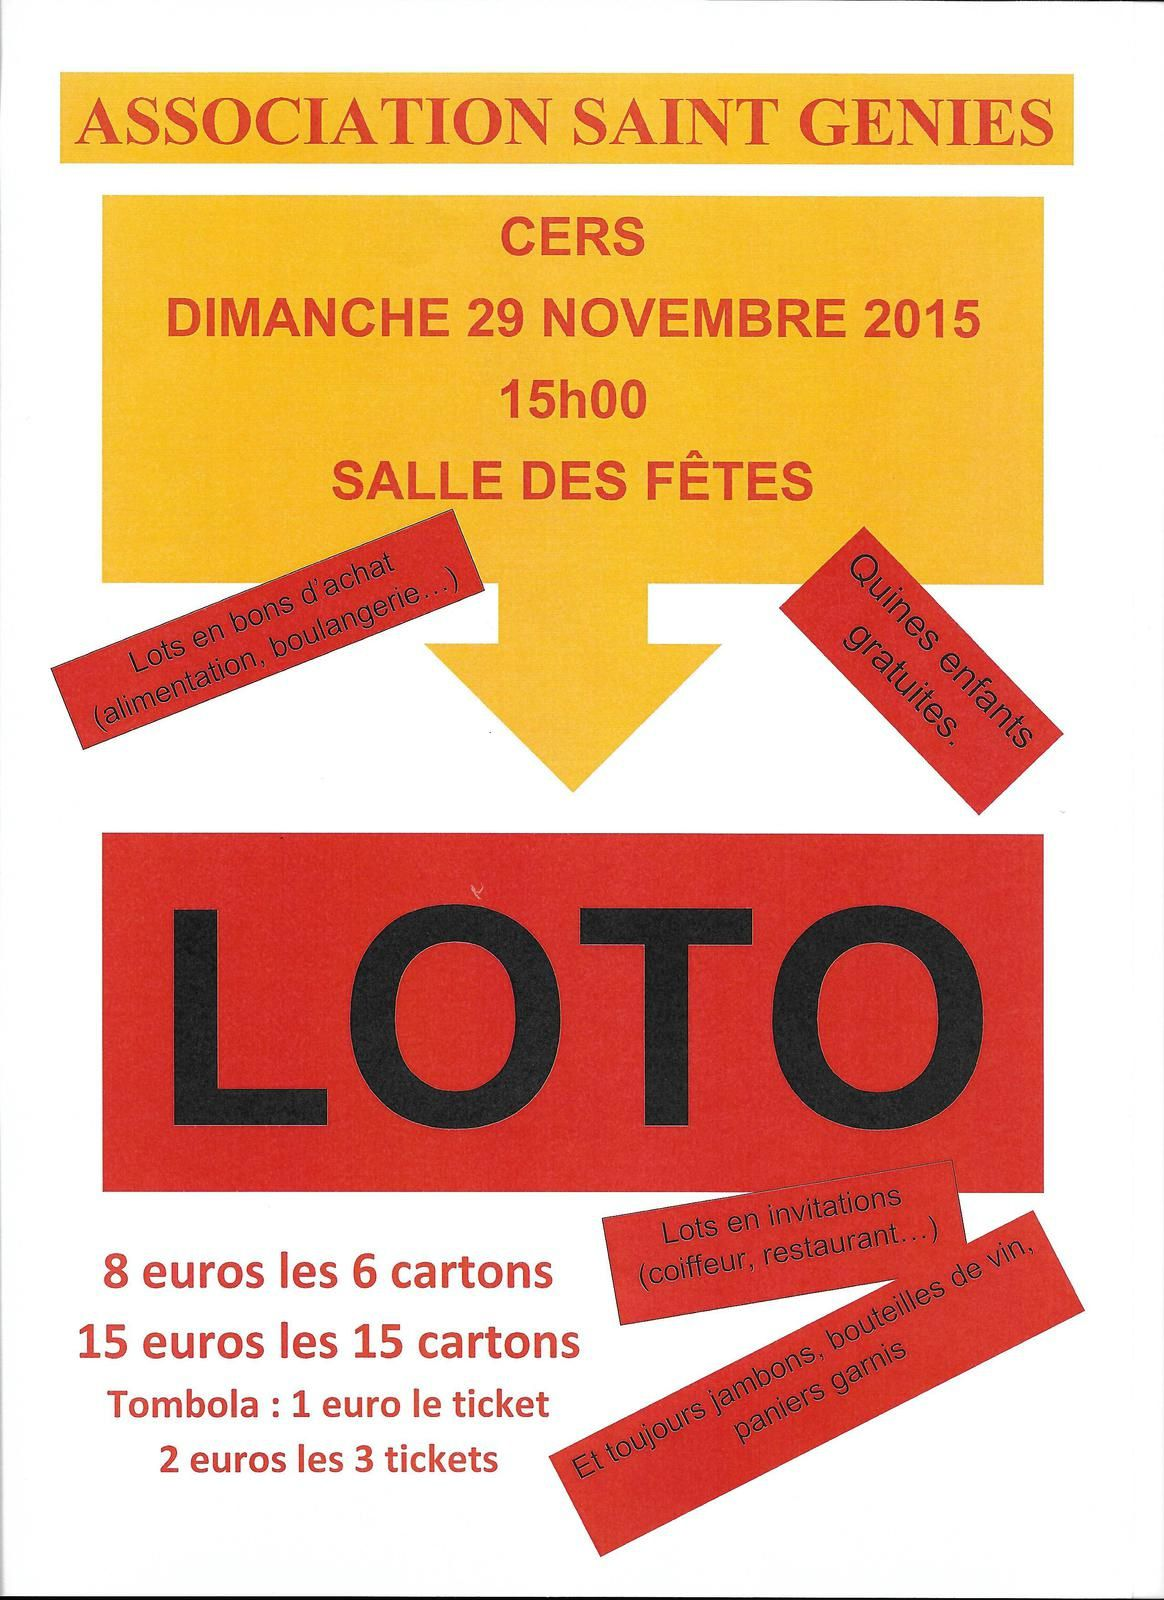 cers dimanche 29 novembre 2015 loto st geni s cers mon village. Black Bedroom Furniture Sets. Home Design Ideas